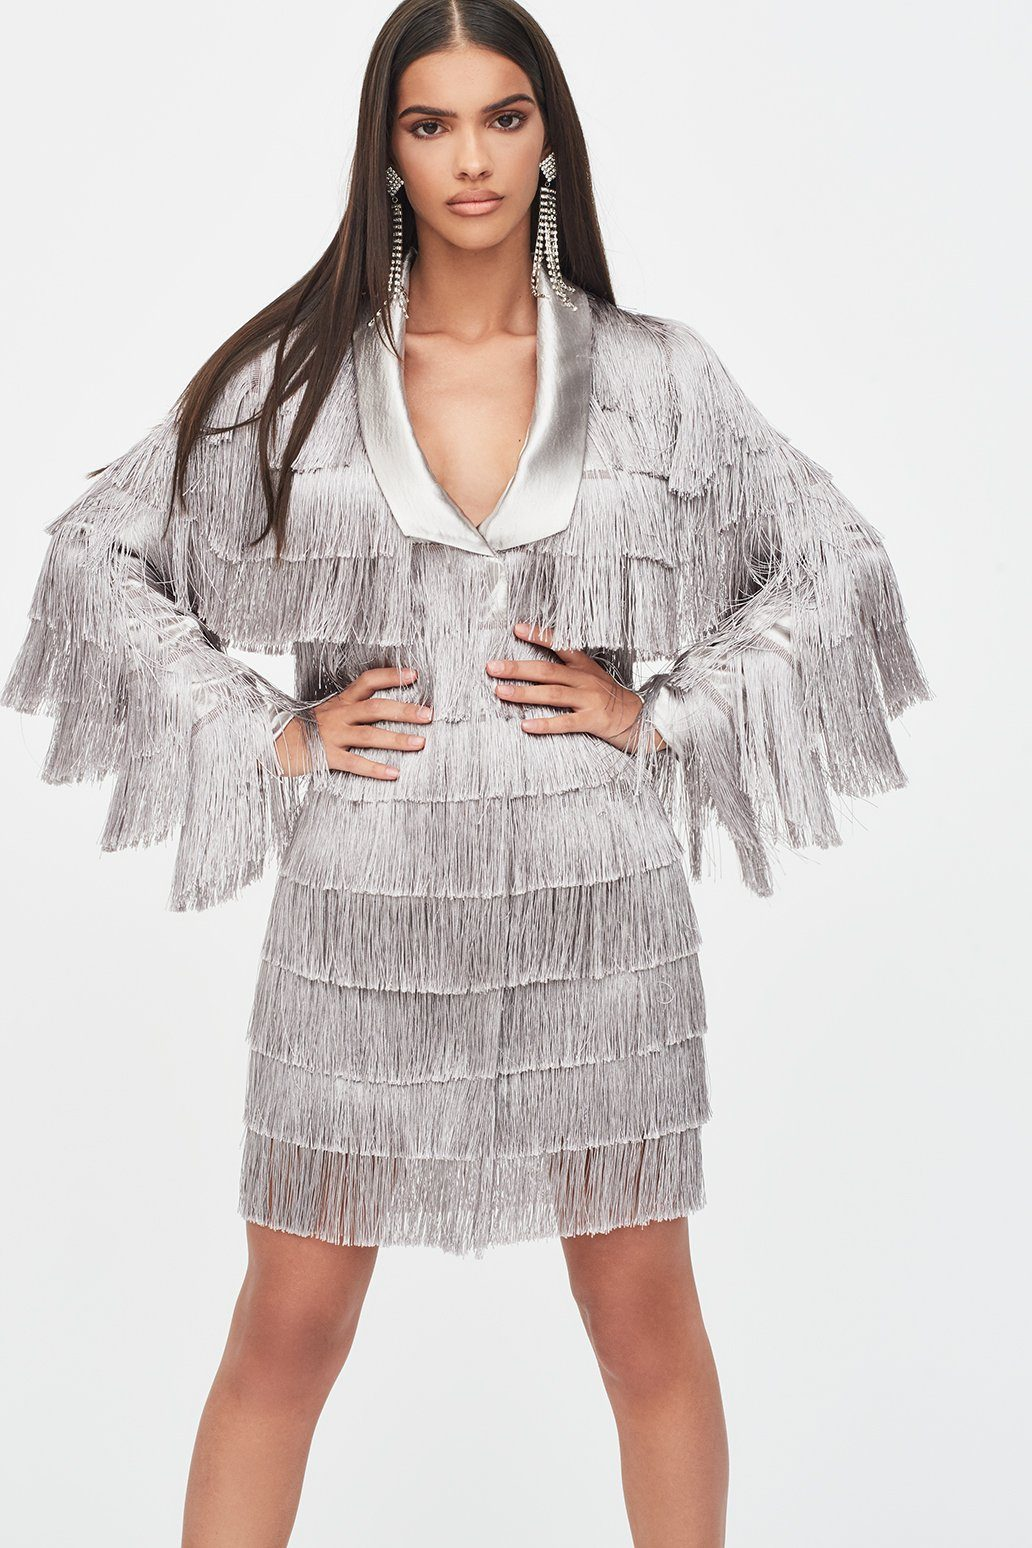 Fringe Blazer Dress in Metallic Silver